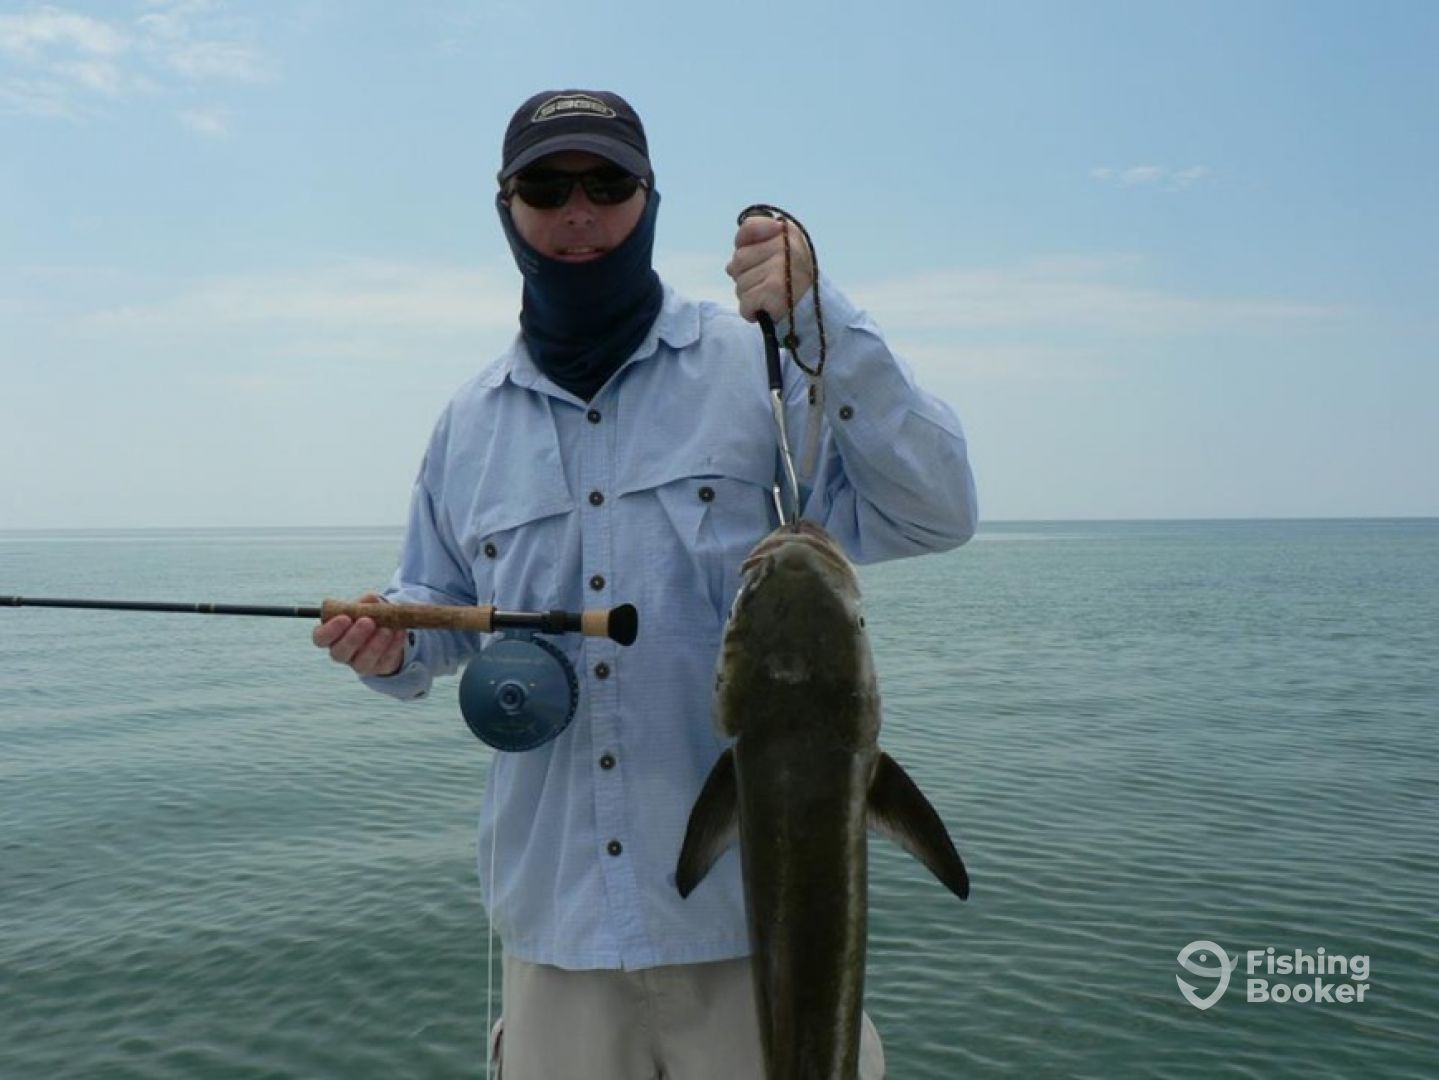 North florida flats fishing company carrabelle fl for Florida 3 day fishing license